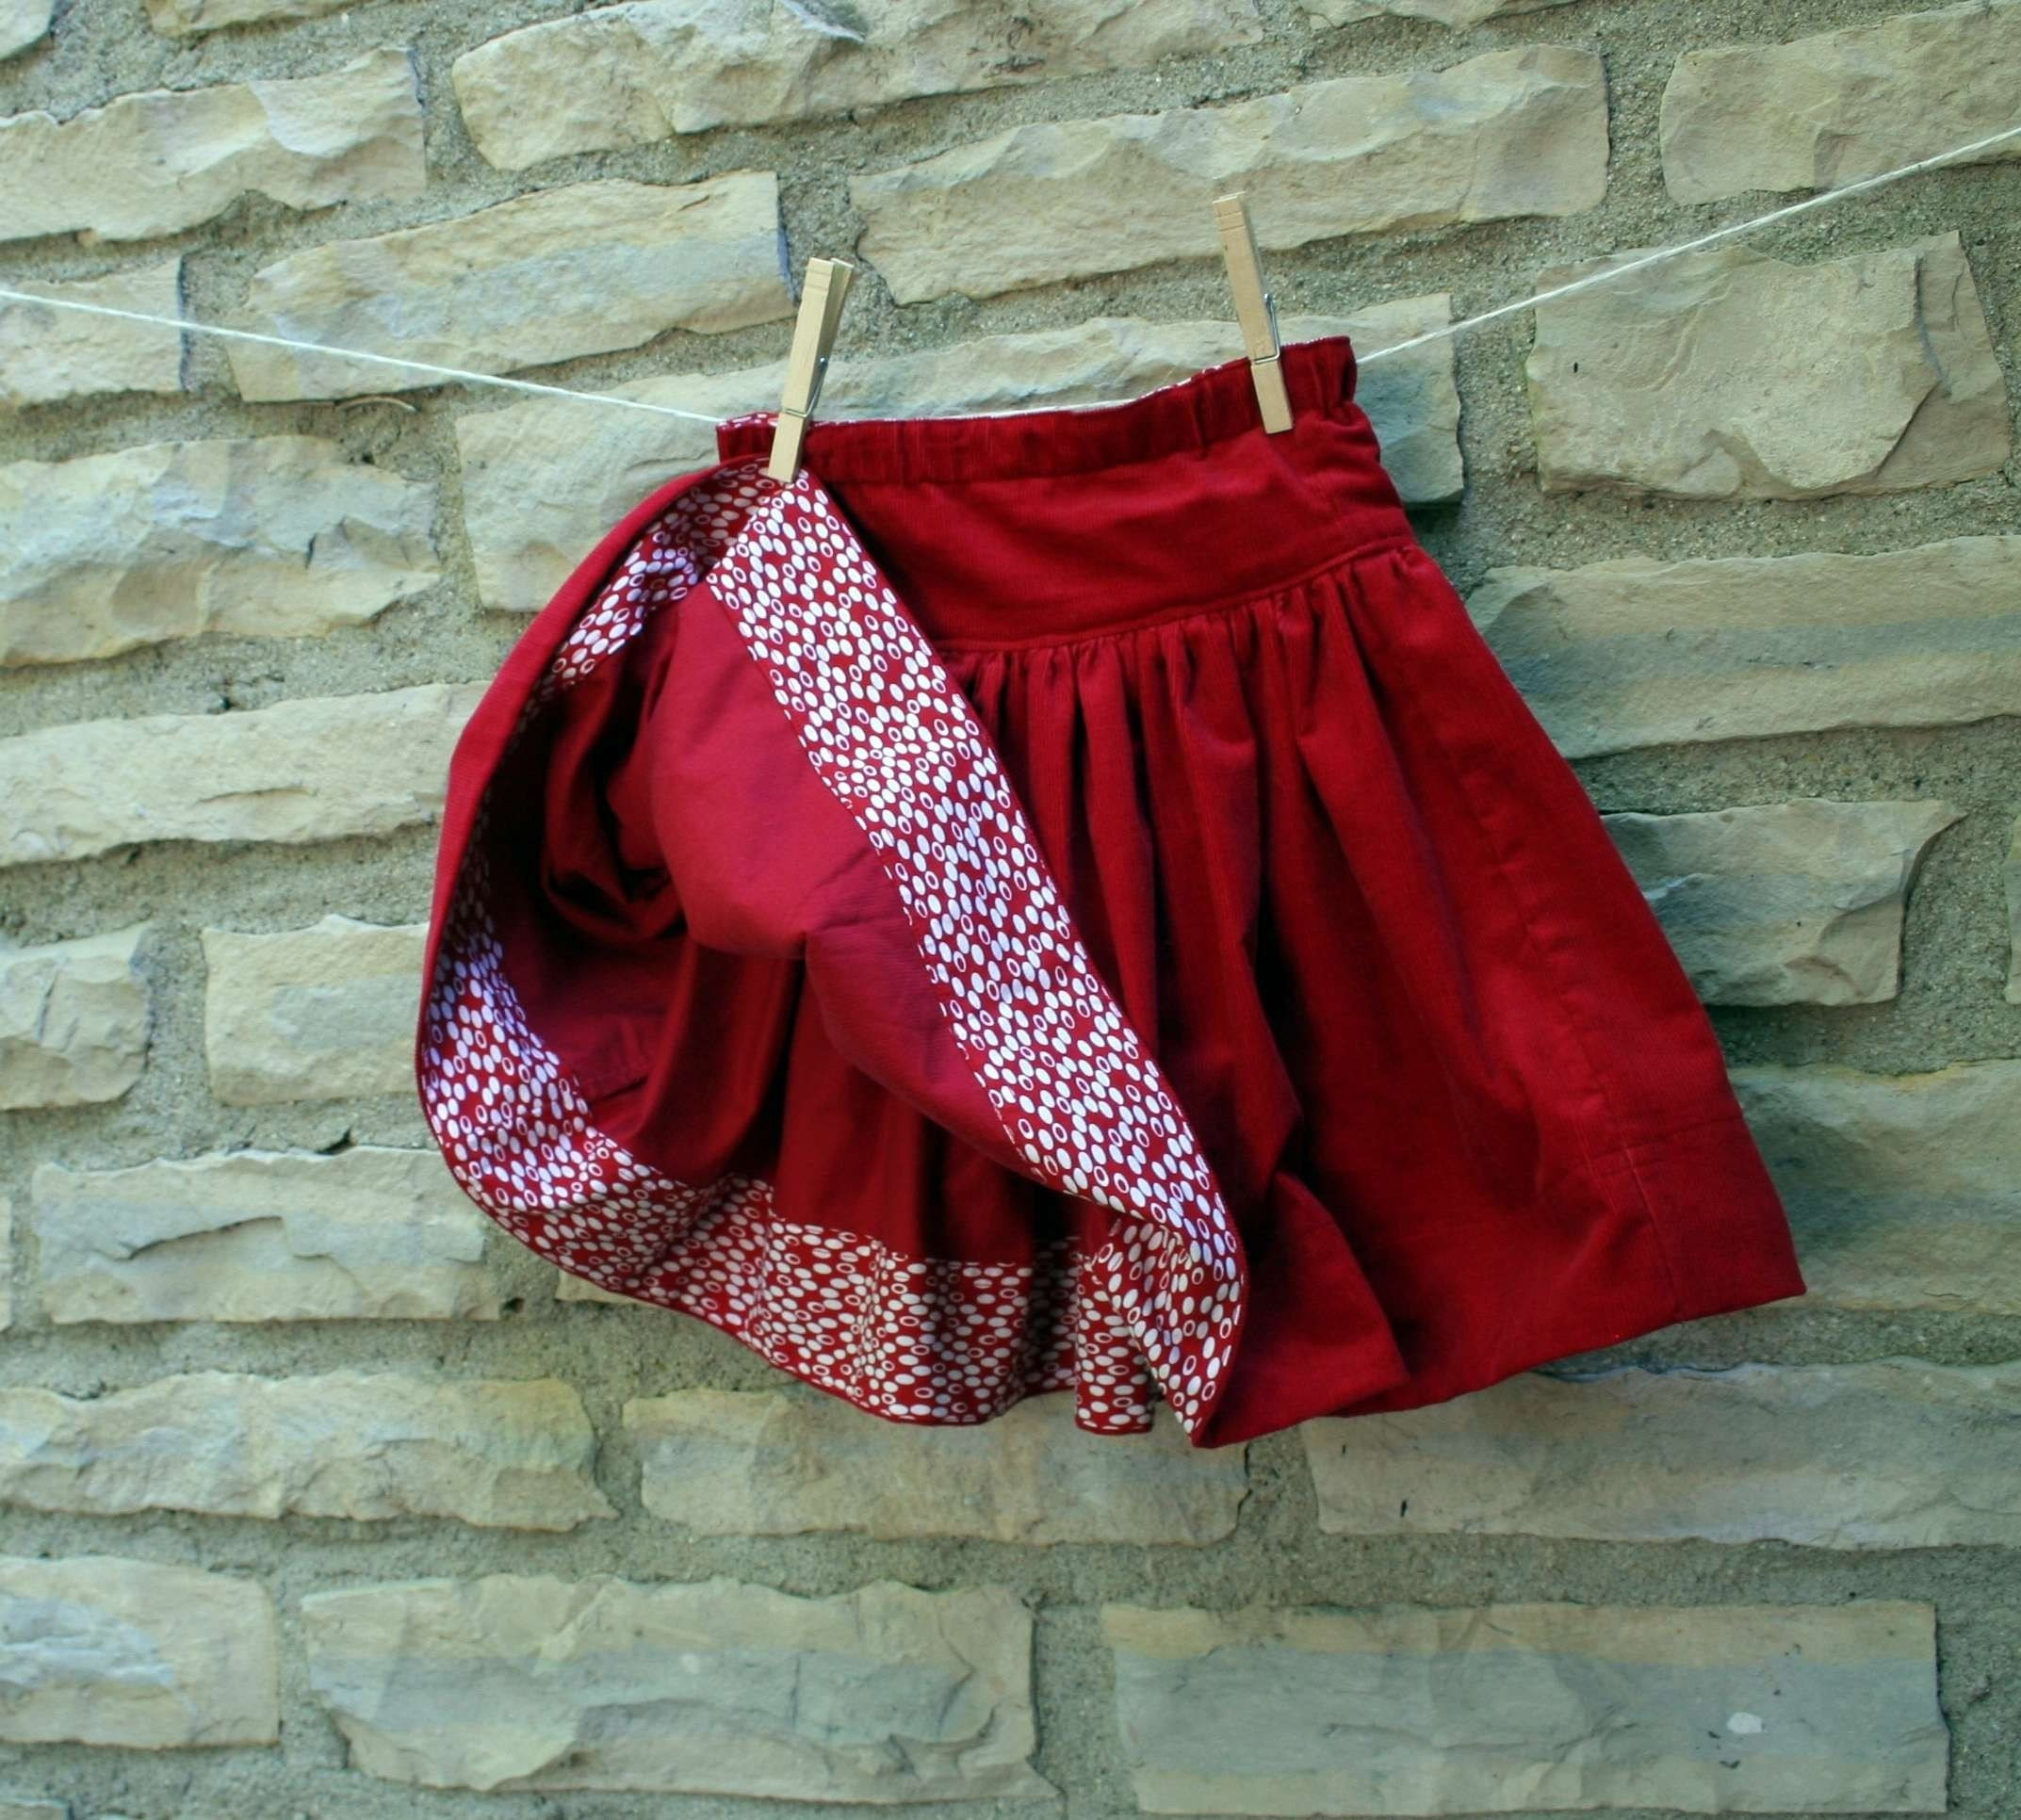 Cherry Red Corduroy Twirl Skirt - Perfect for Valentine's Day